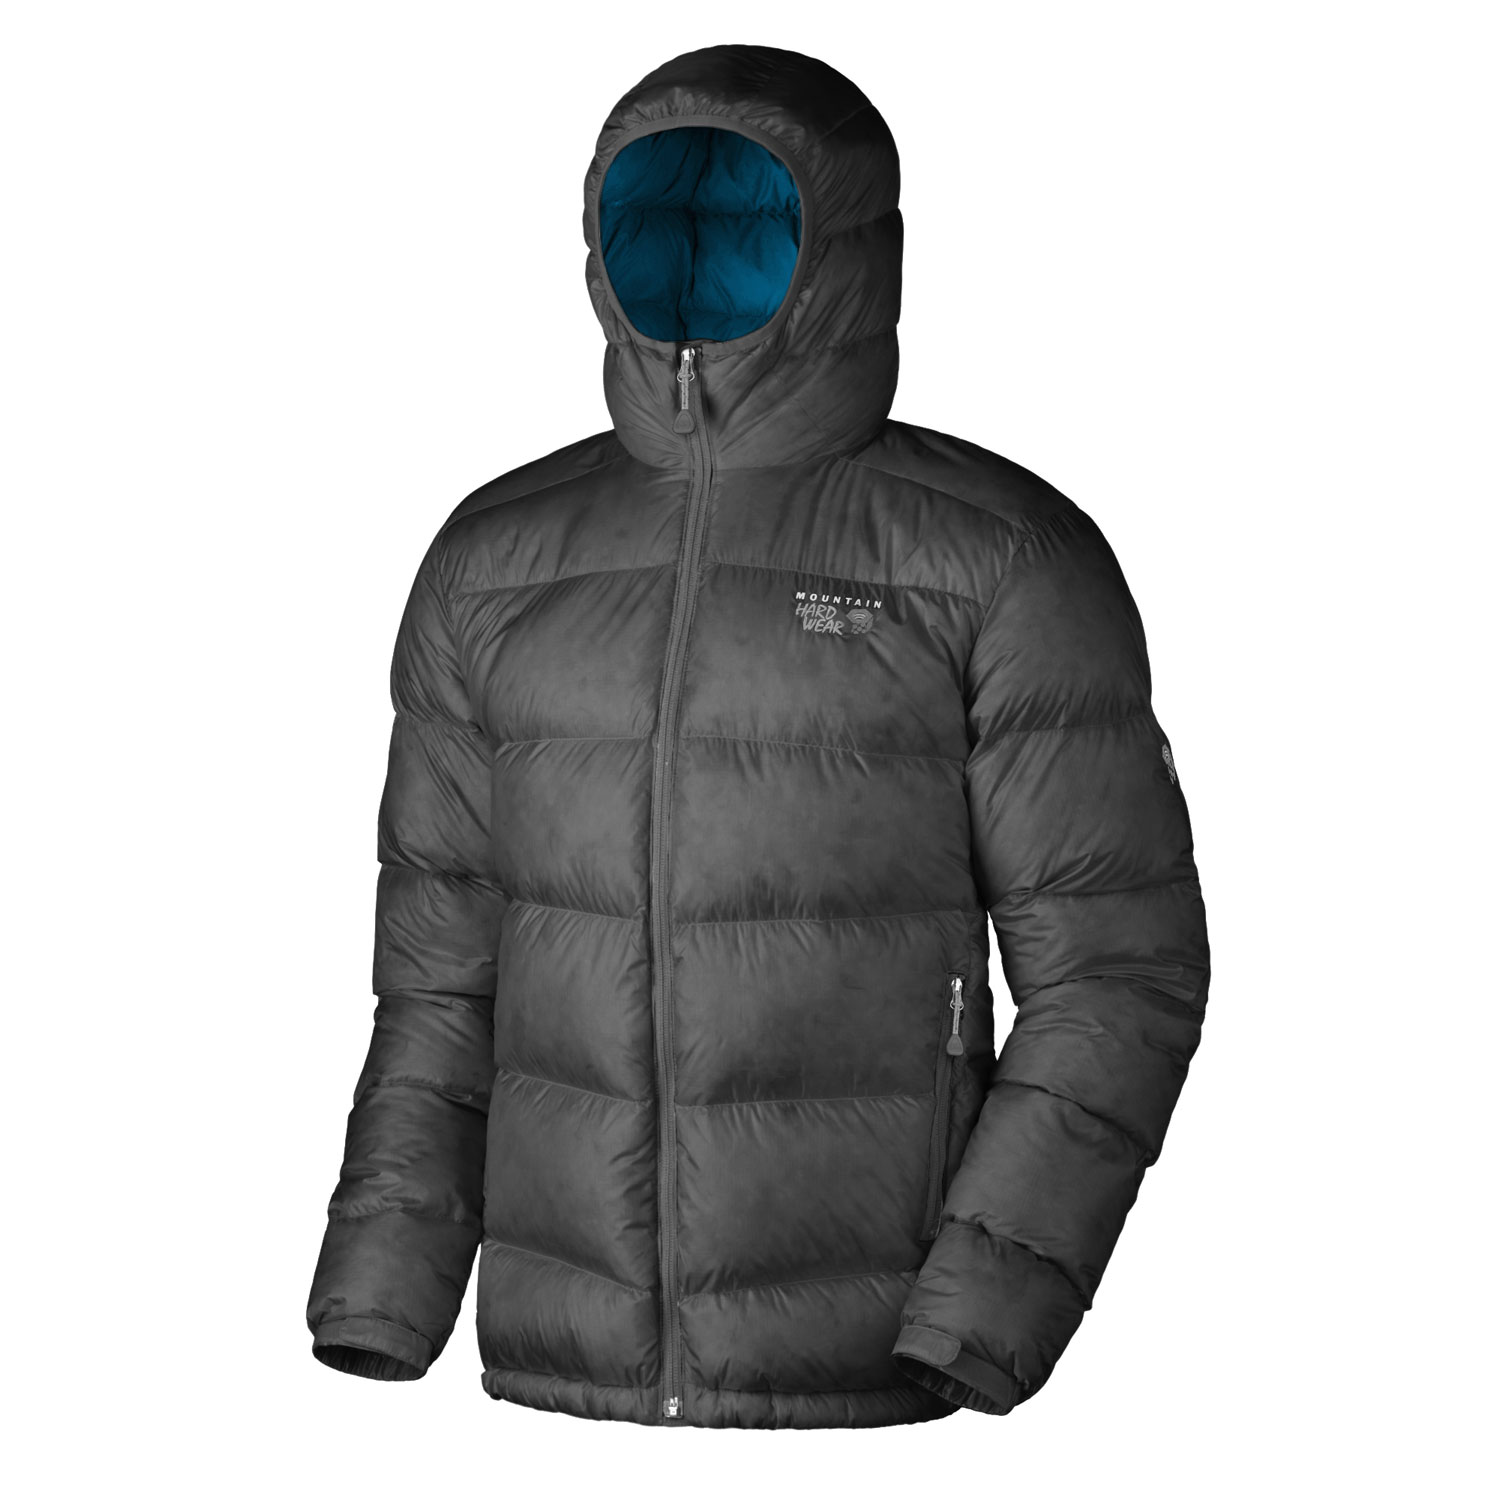 "Key Features of the Mountain Hardwear Kelvinator Hooded Down Jacket: Avg. weight: 1 lb 3 oz; 548g Center back length: 30"" Fabric: body: 20D Rip (100% nylon) insulation: 650-Fill Goose Down Two front handwarmer pockets Dual hem drawcords seal in warmth Full elastic cuffs slide easily over layers to seal in warmth Low profile, insulated hood Micro-Chamois - lined chin guard prevents zipper chafe Stuff sack included - $174.95"